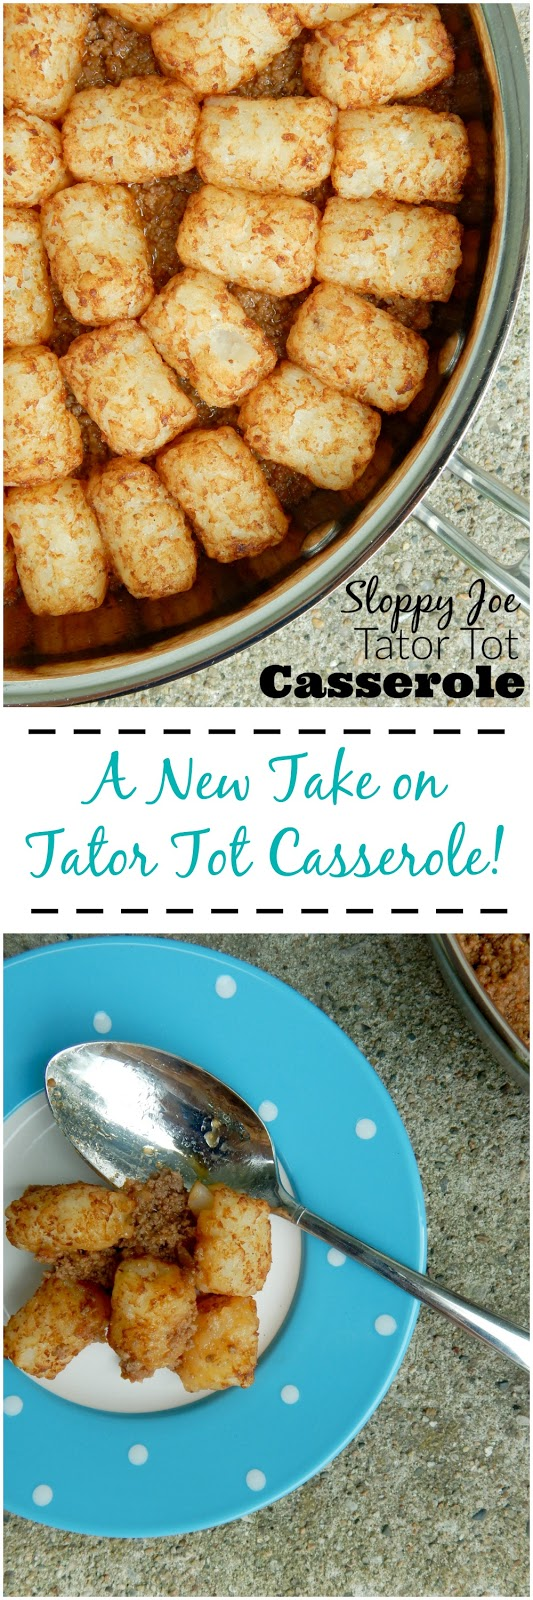 sloppy joe tator tot casserole (sweetandsavoryfood.com)